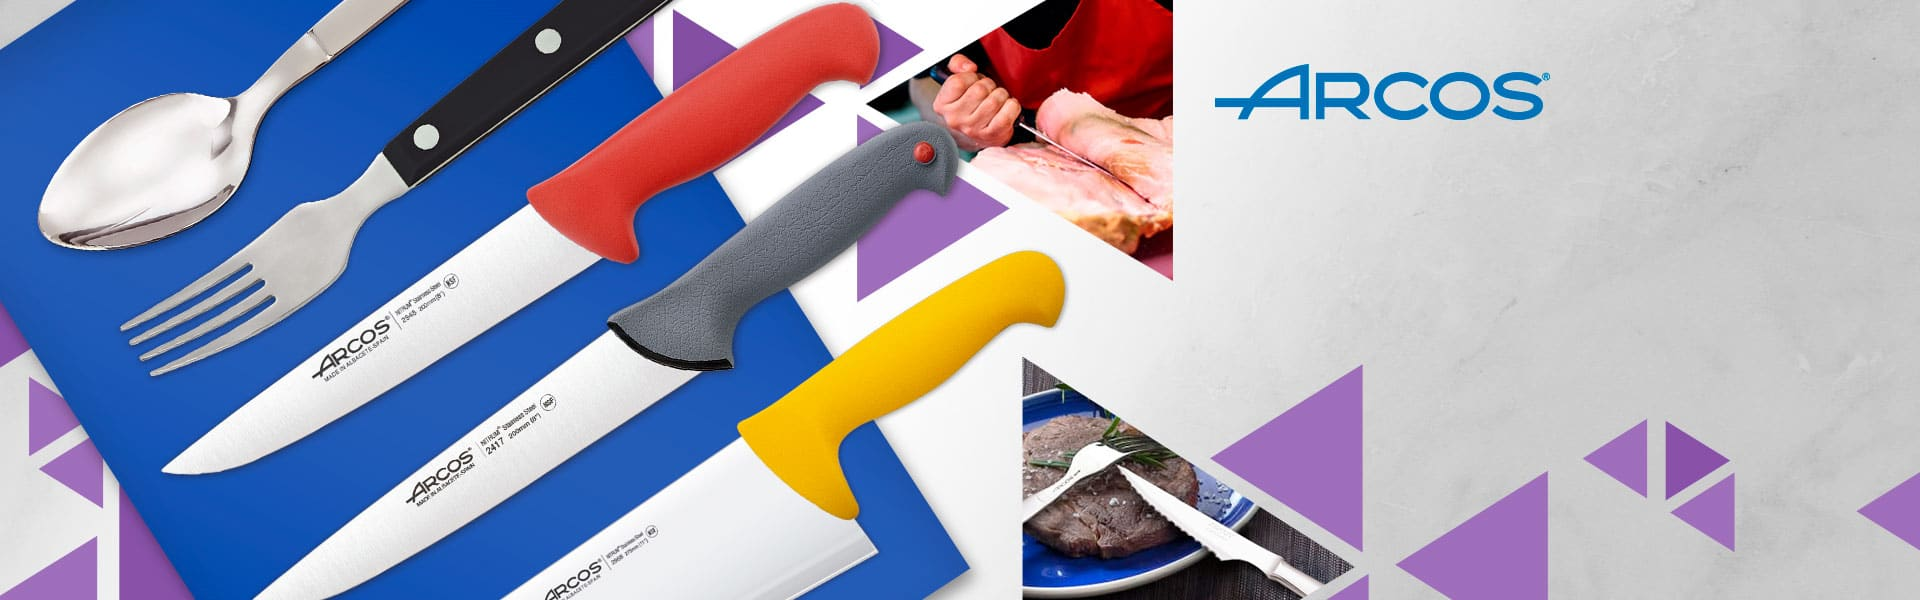 New brand ARCOS, professional cutlery